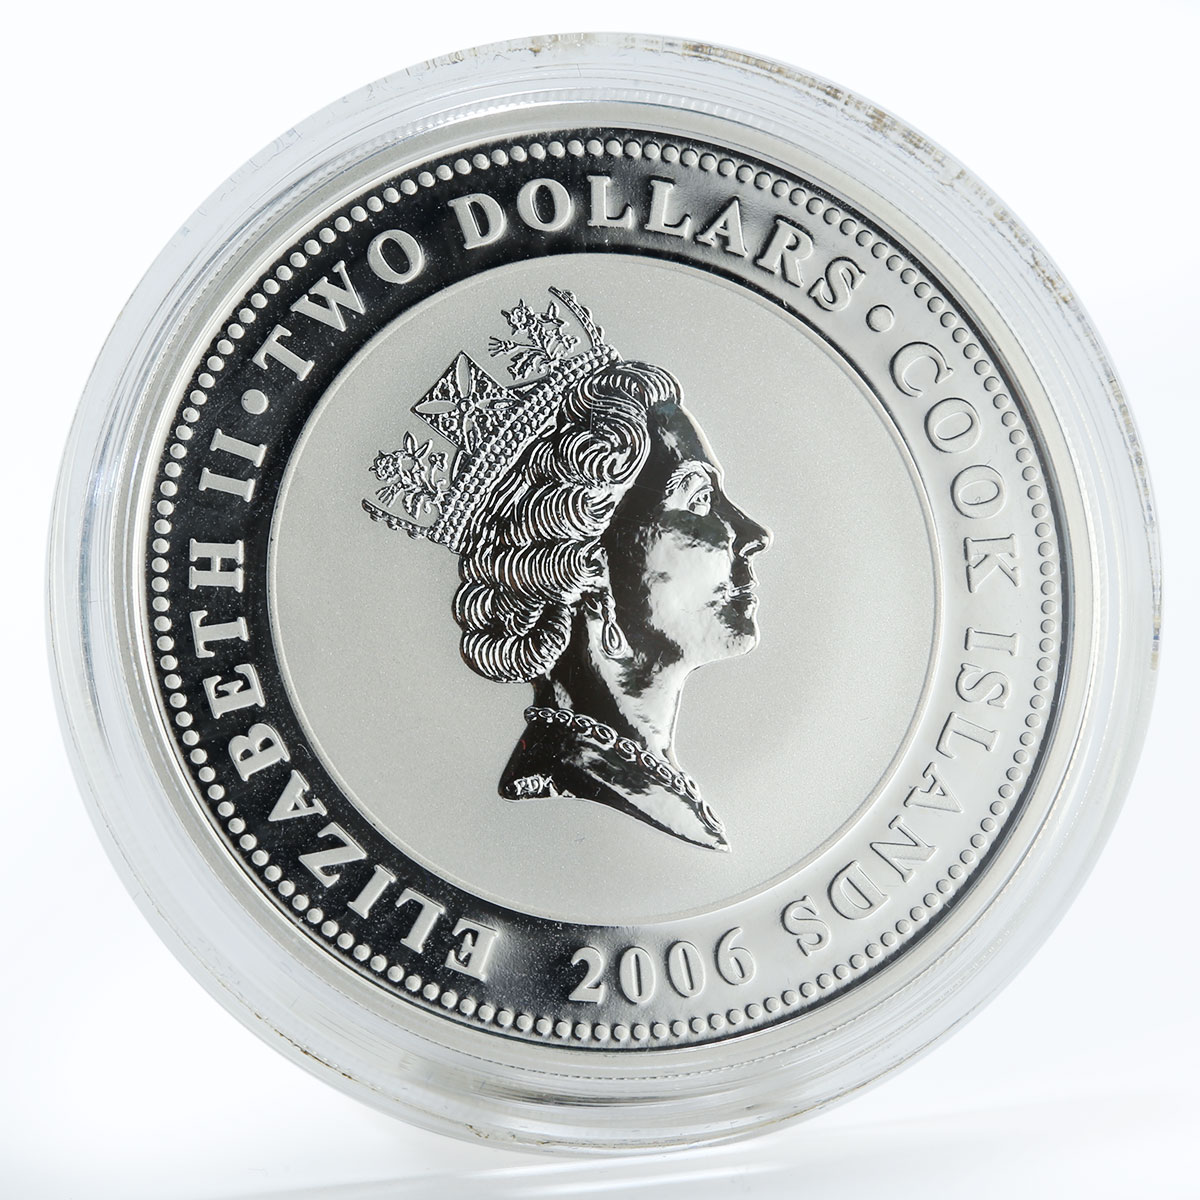 Cook Islands 2 dollars Anna Akhmatova Poets of the Silver Age silver coin 2006